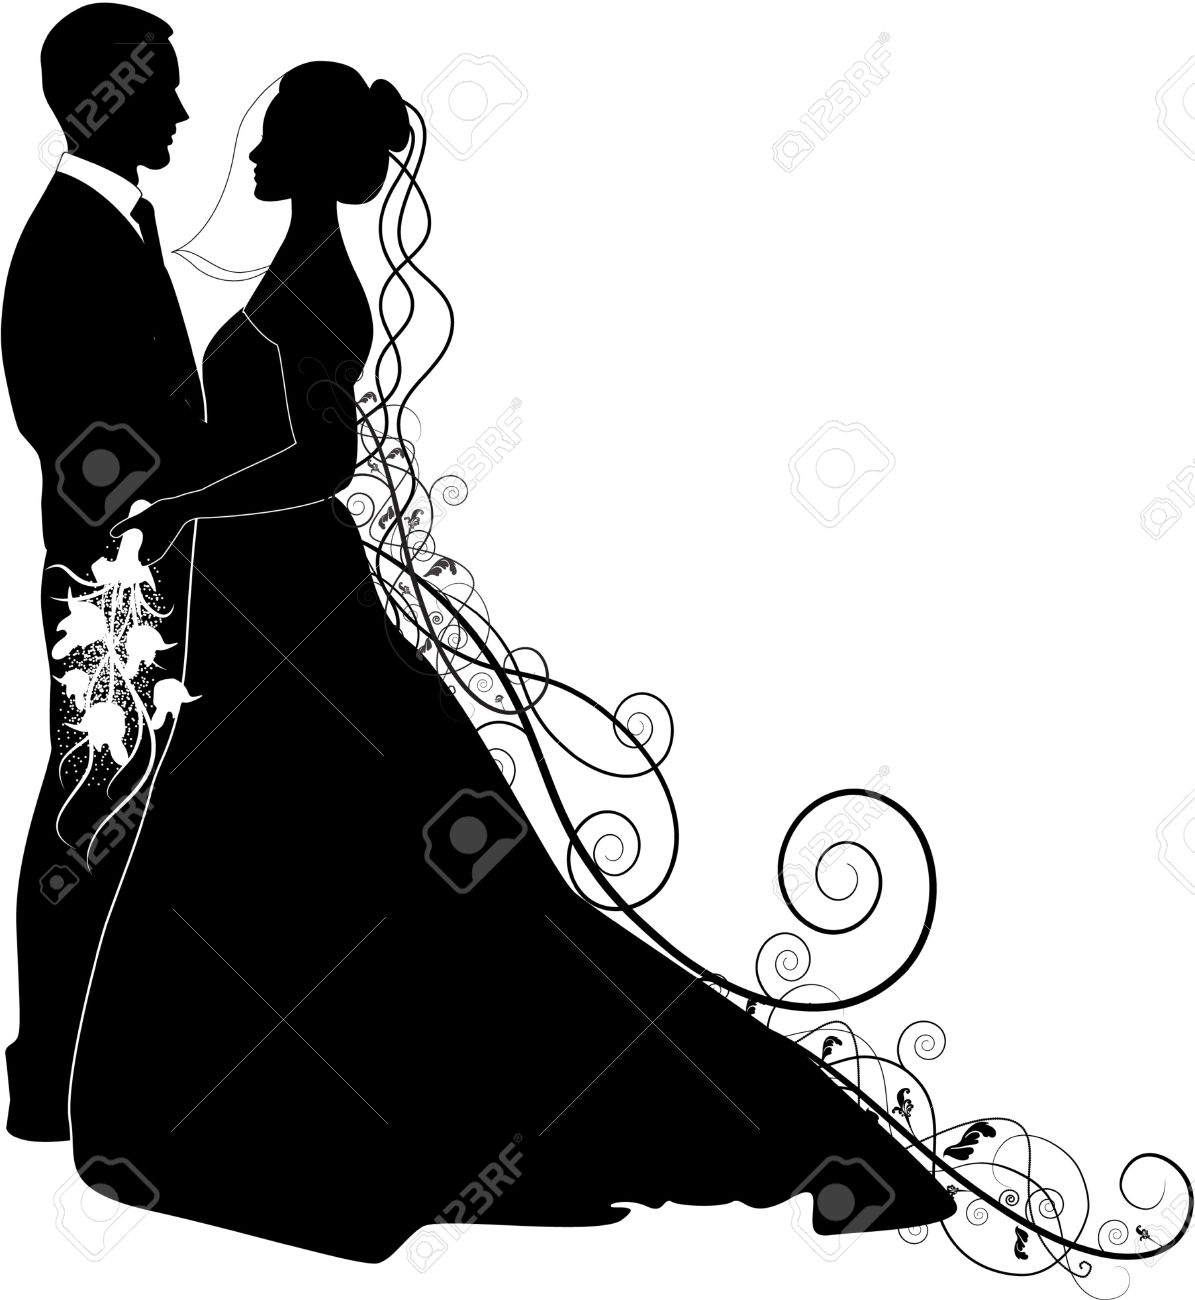 Wedding Dress clipart bride and groom silhouette Free And Stock Royalty Groom